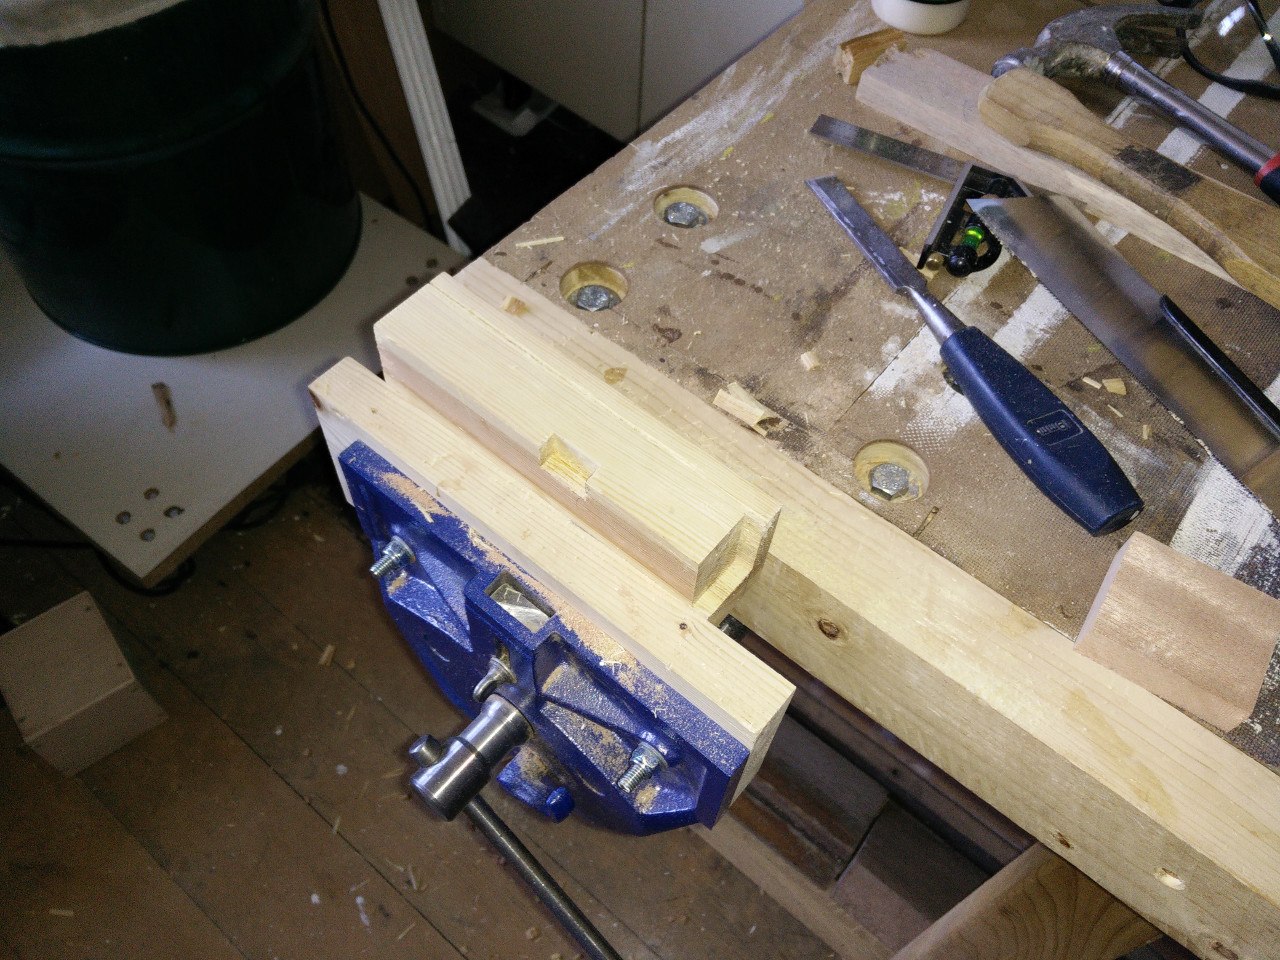 Repairing a window sill part 3 wobblycogs workshop for Window sill replacement